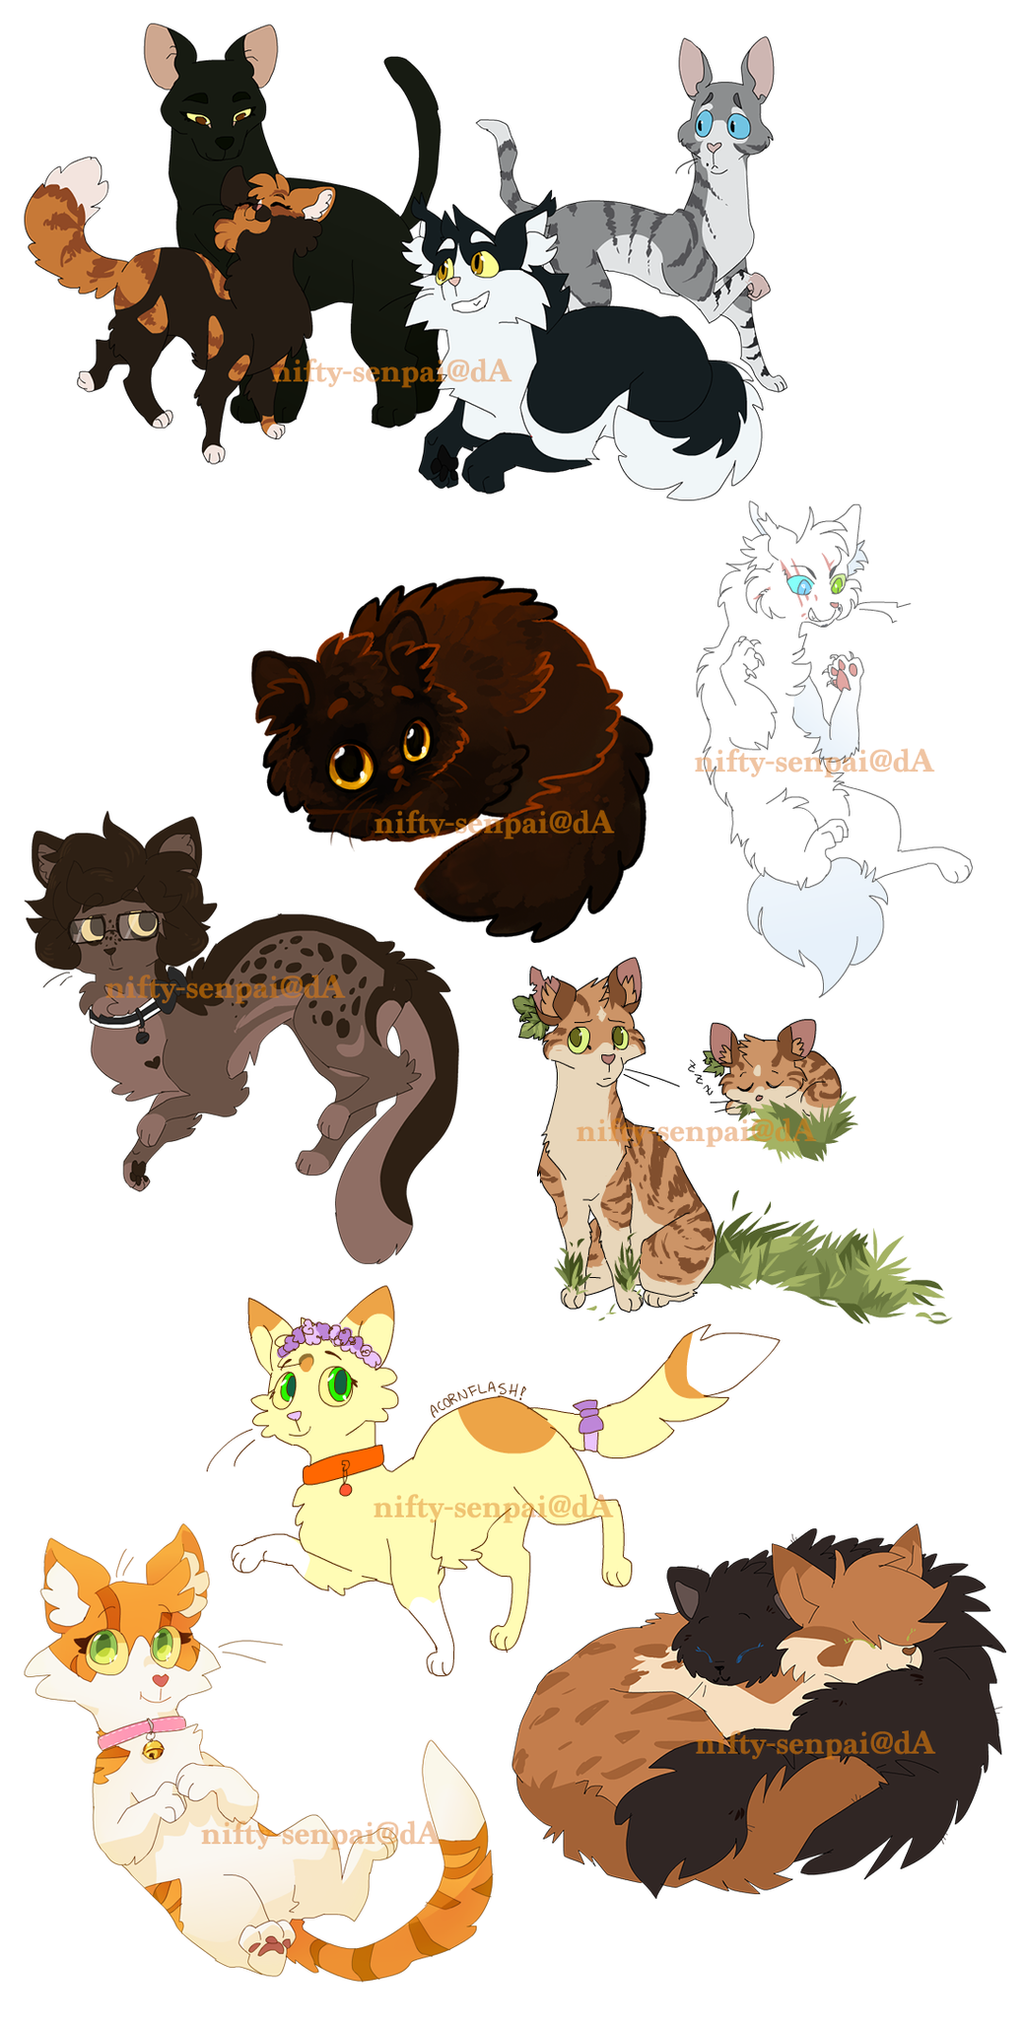 Commission batch 3 by nifty senpai on deviantart for Nifty family